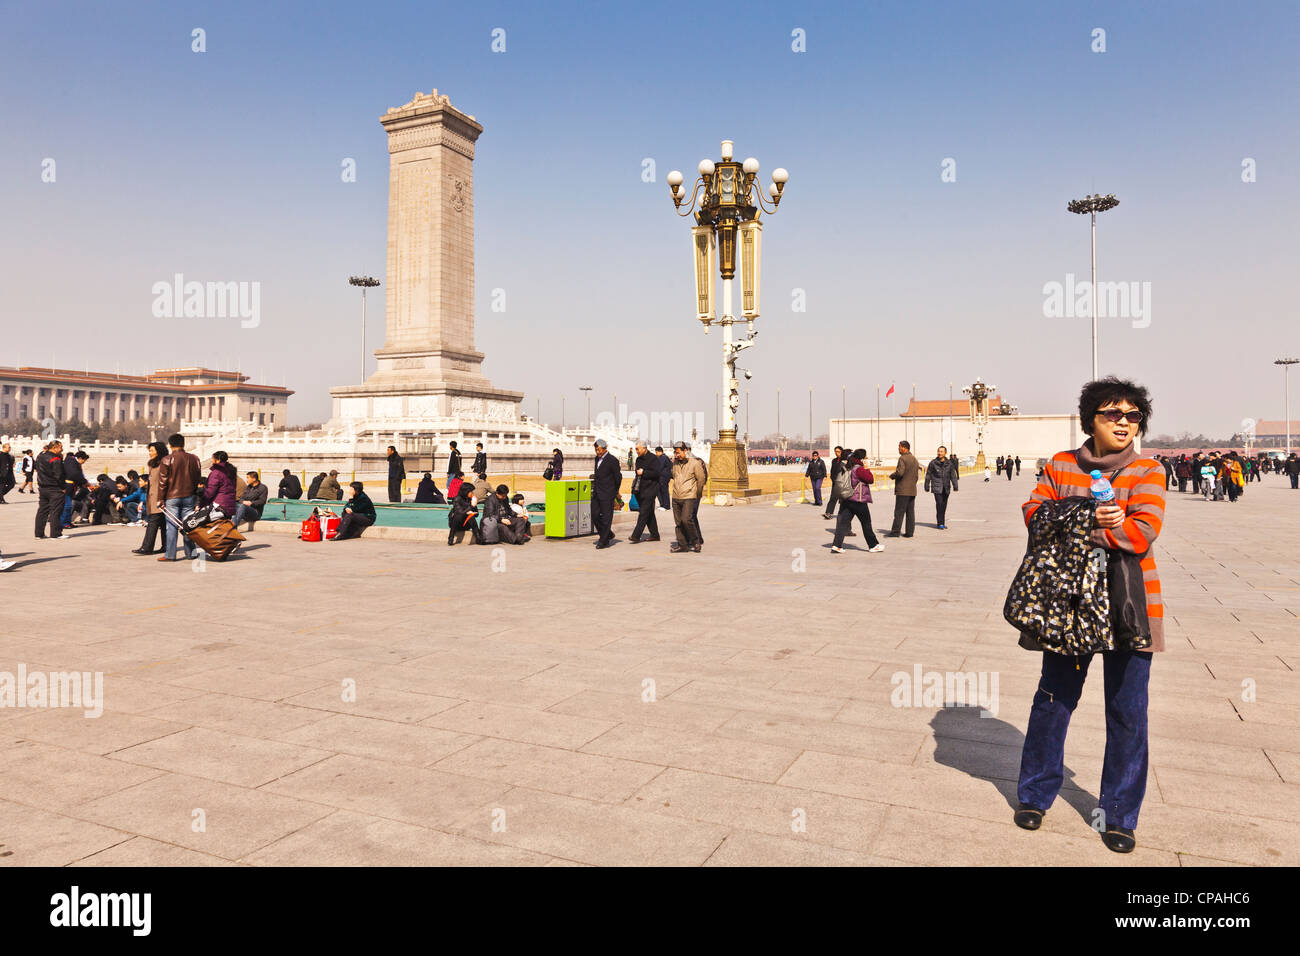 Tourists in Tian'anmen Square, Beijing, China. The obelisk is the Memorial to the Heroes of the Revolution. - Stock Image